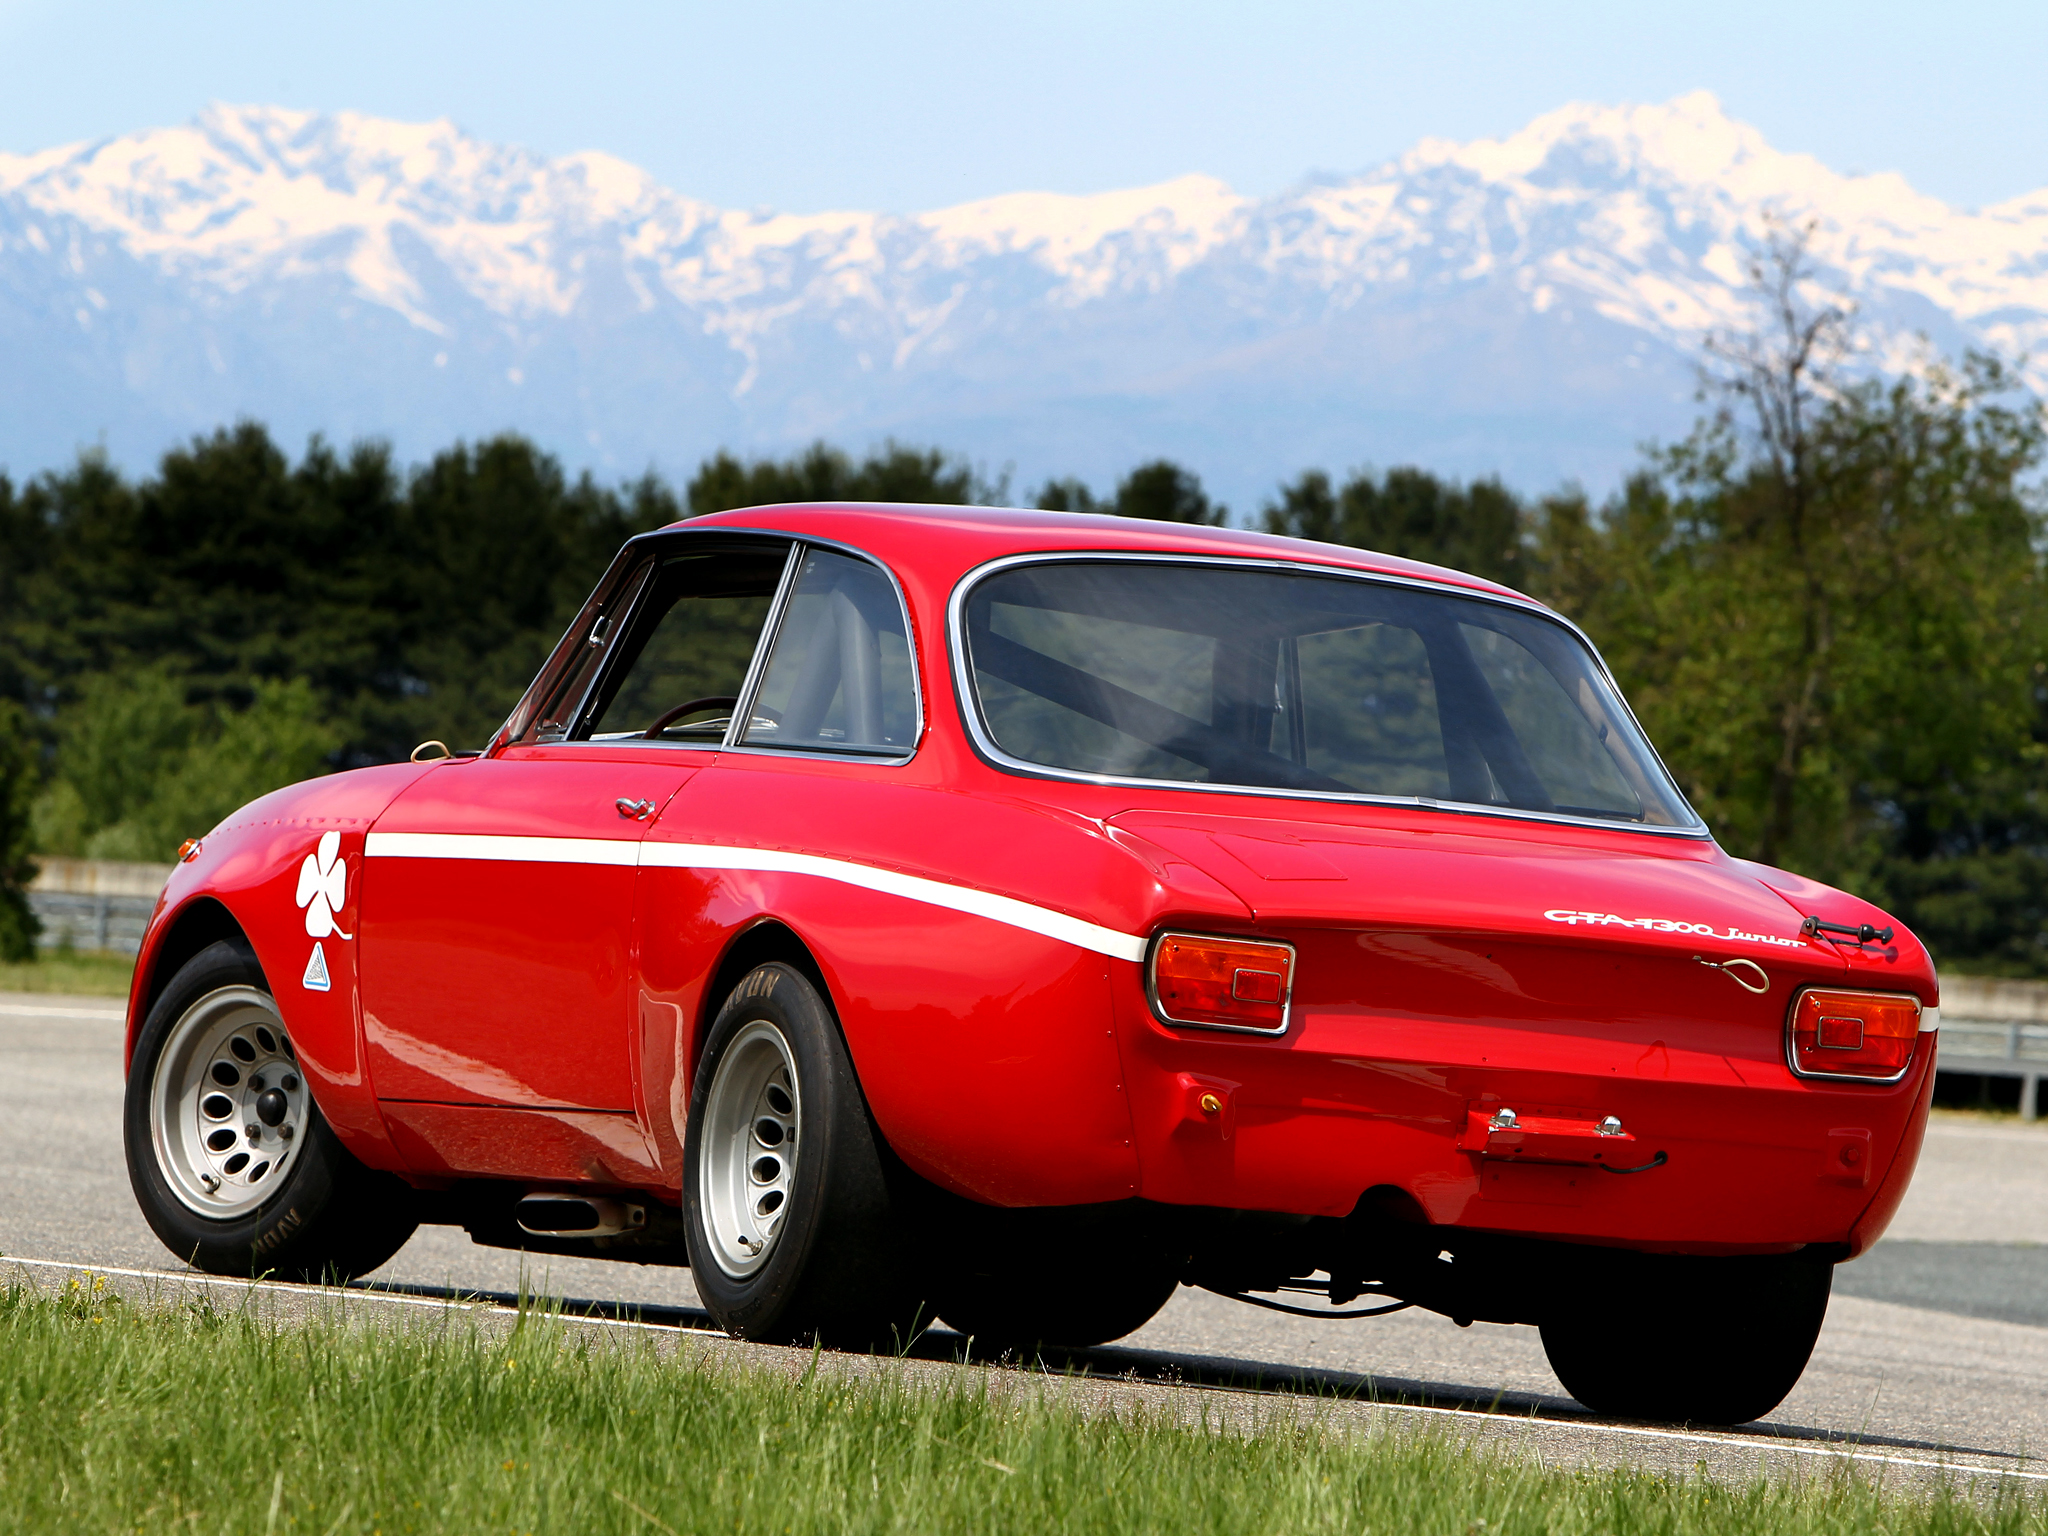 alfa romeo gta coupe seriess #14